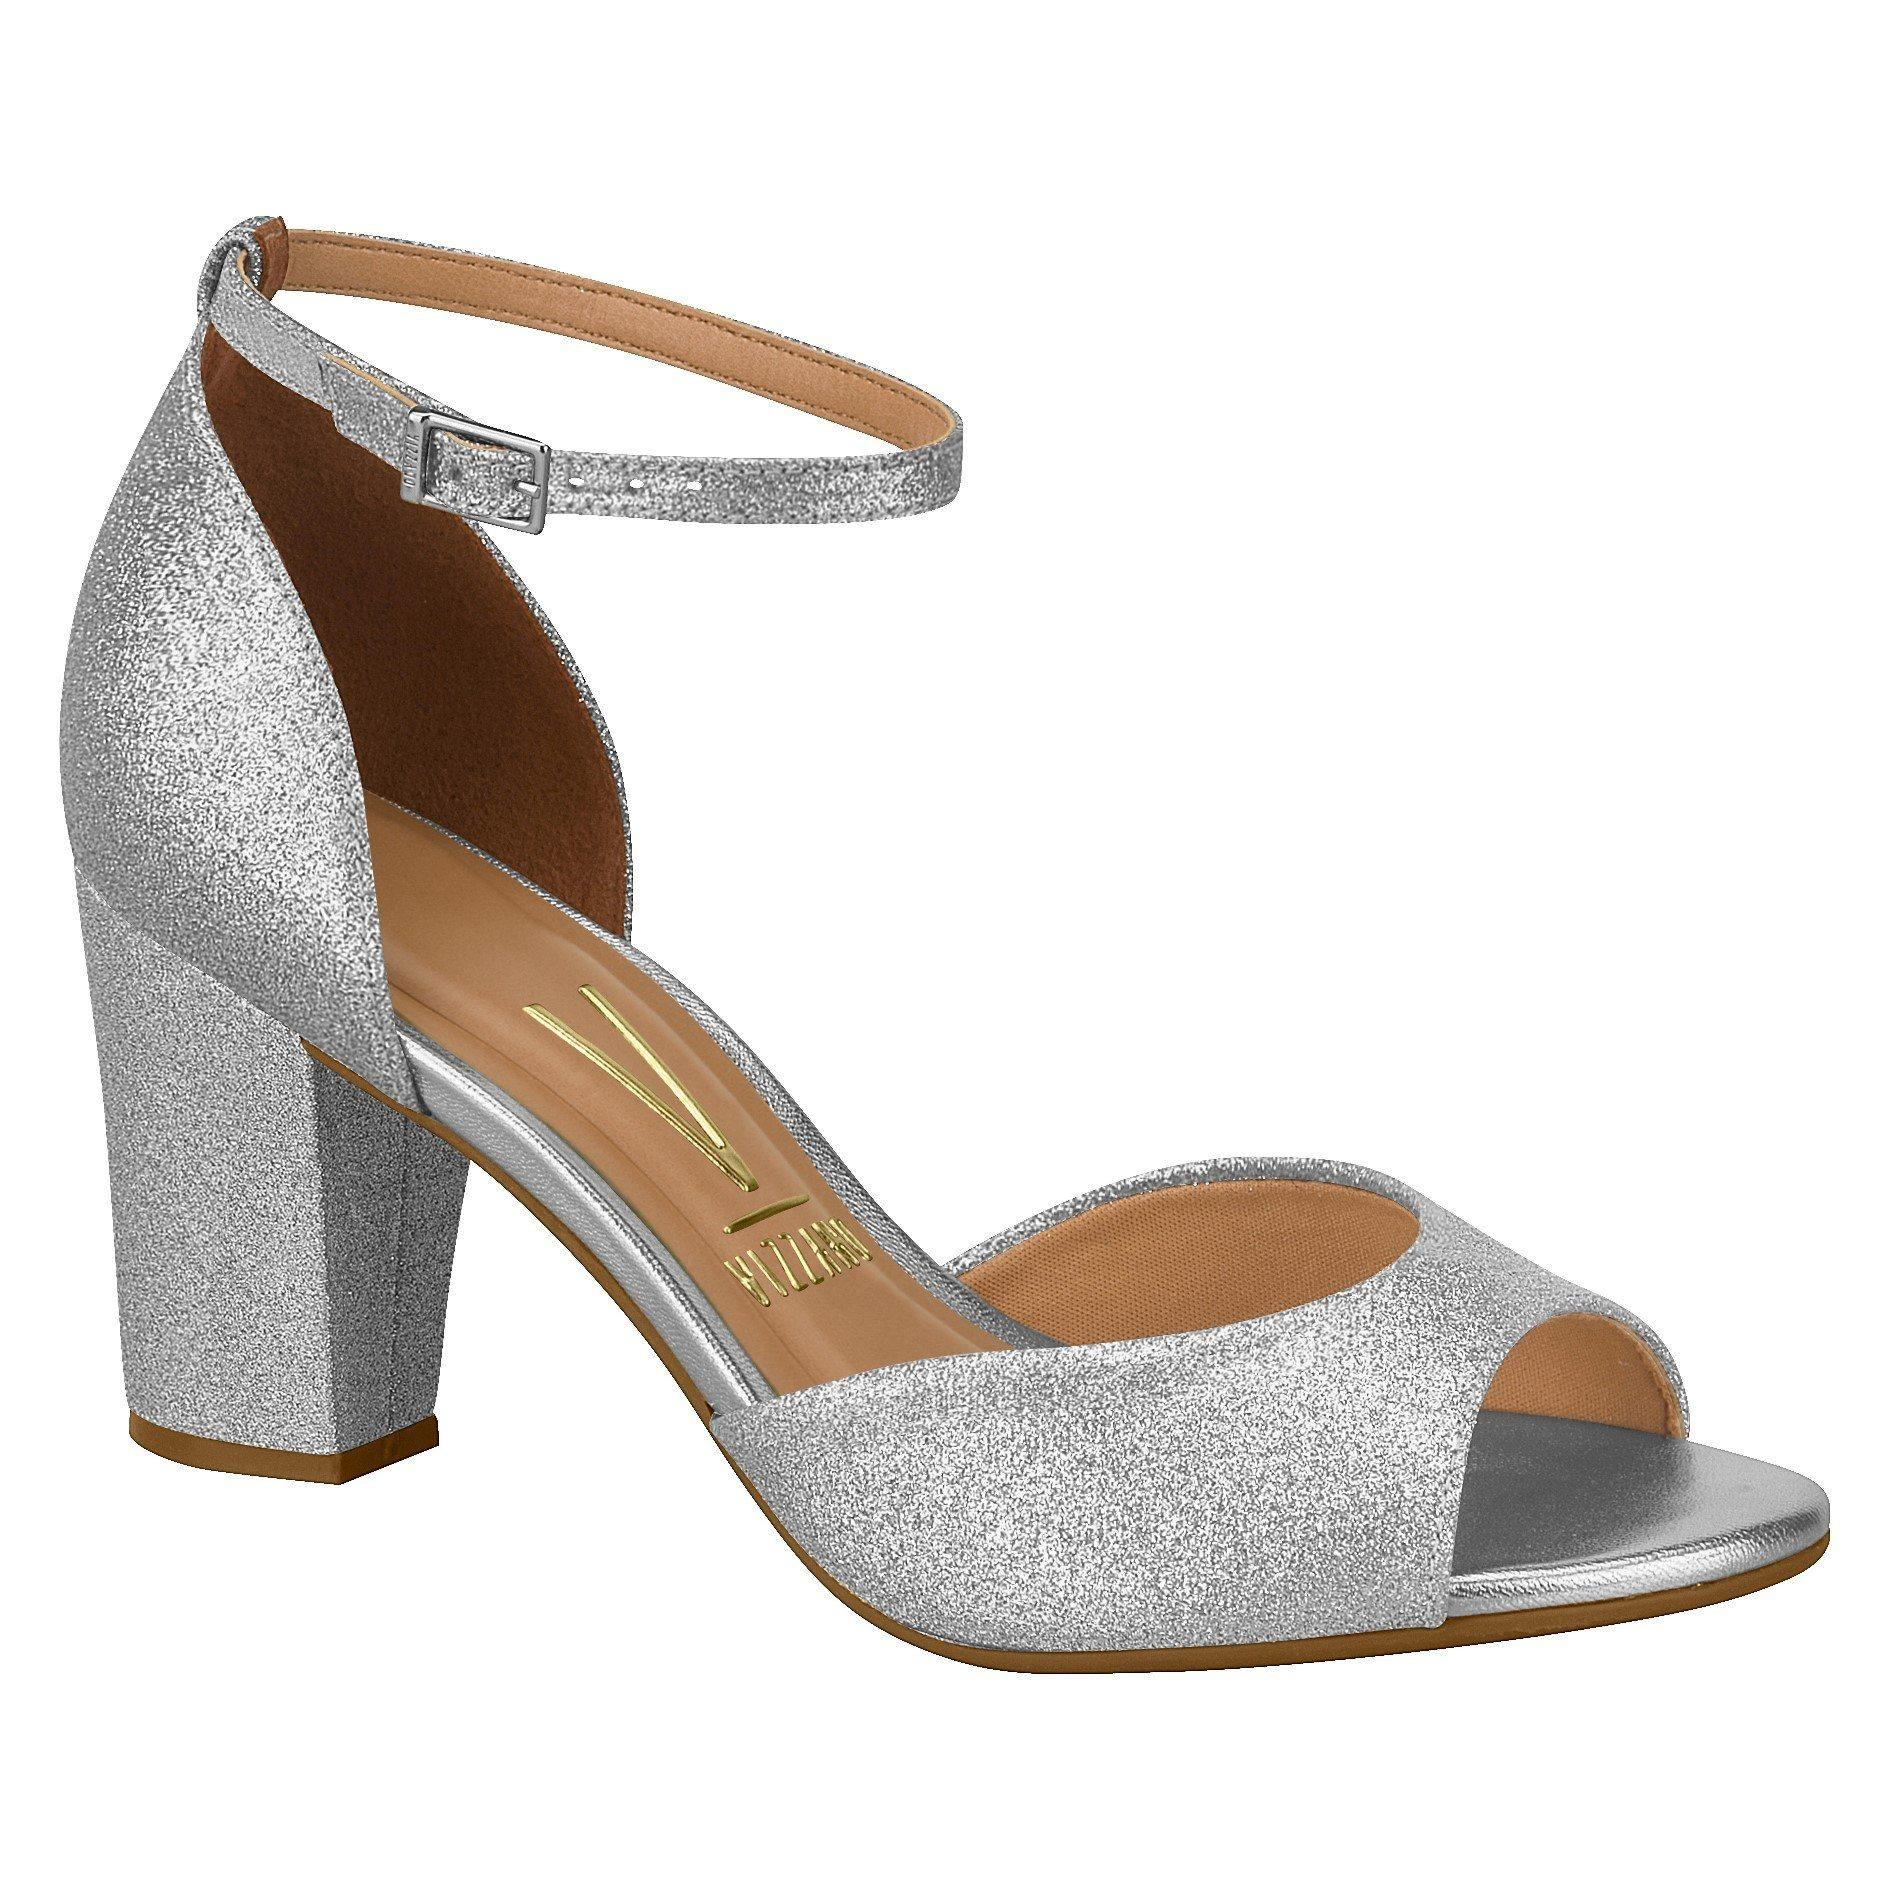 Vizzano 6262-406 Evening Block Heel Sandal in Silver Glitter